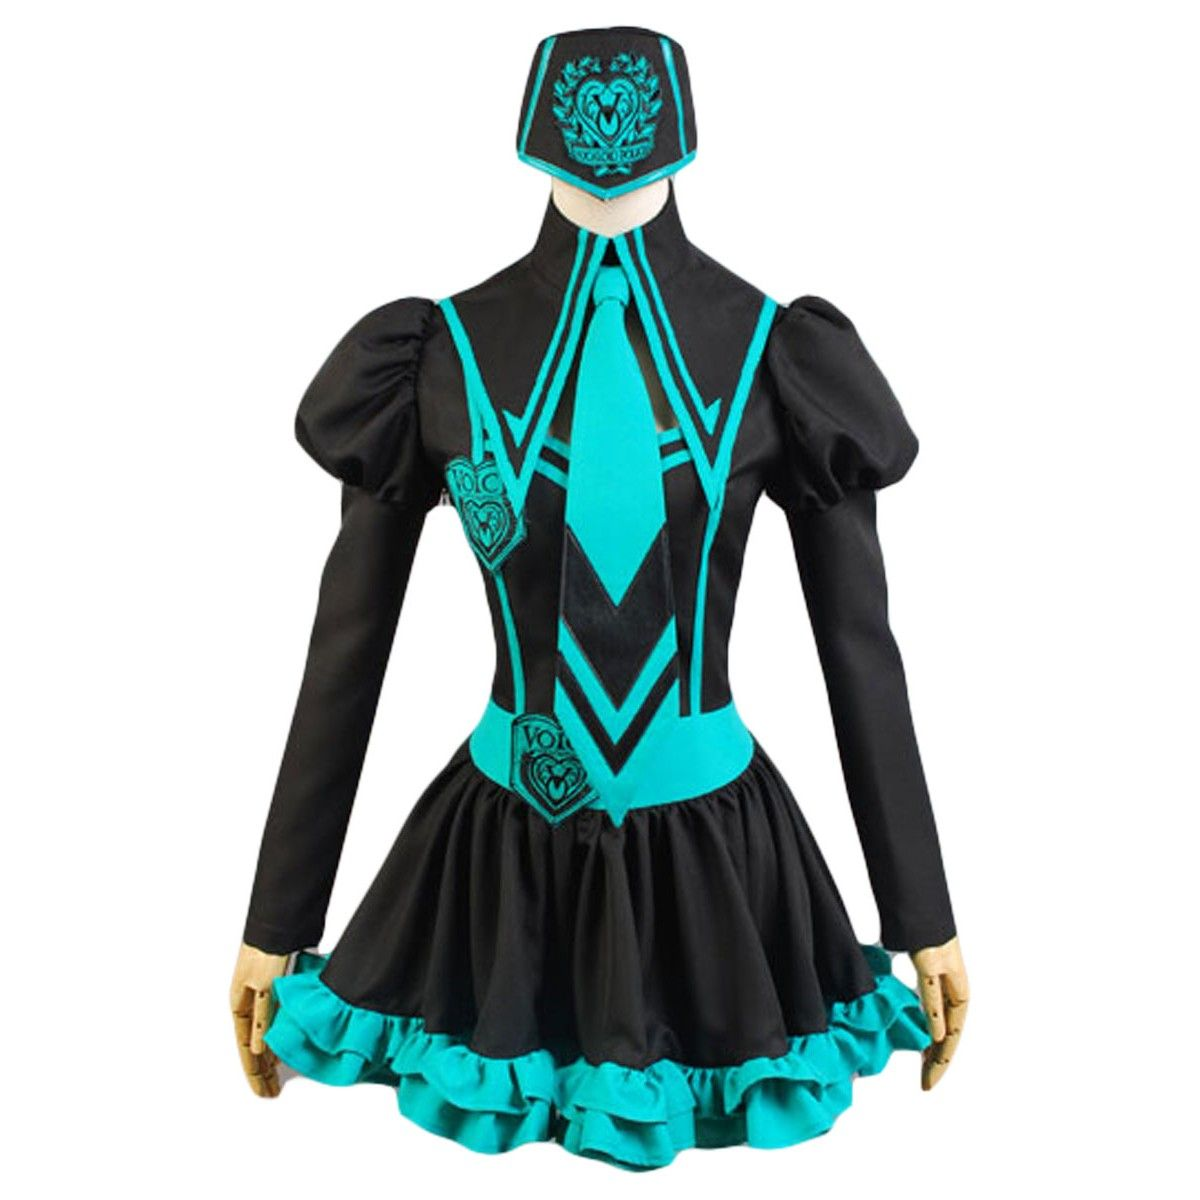 VOCALOID 2 Rin Kagamine Cosplay Halloween Costume Complete Set Size S